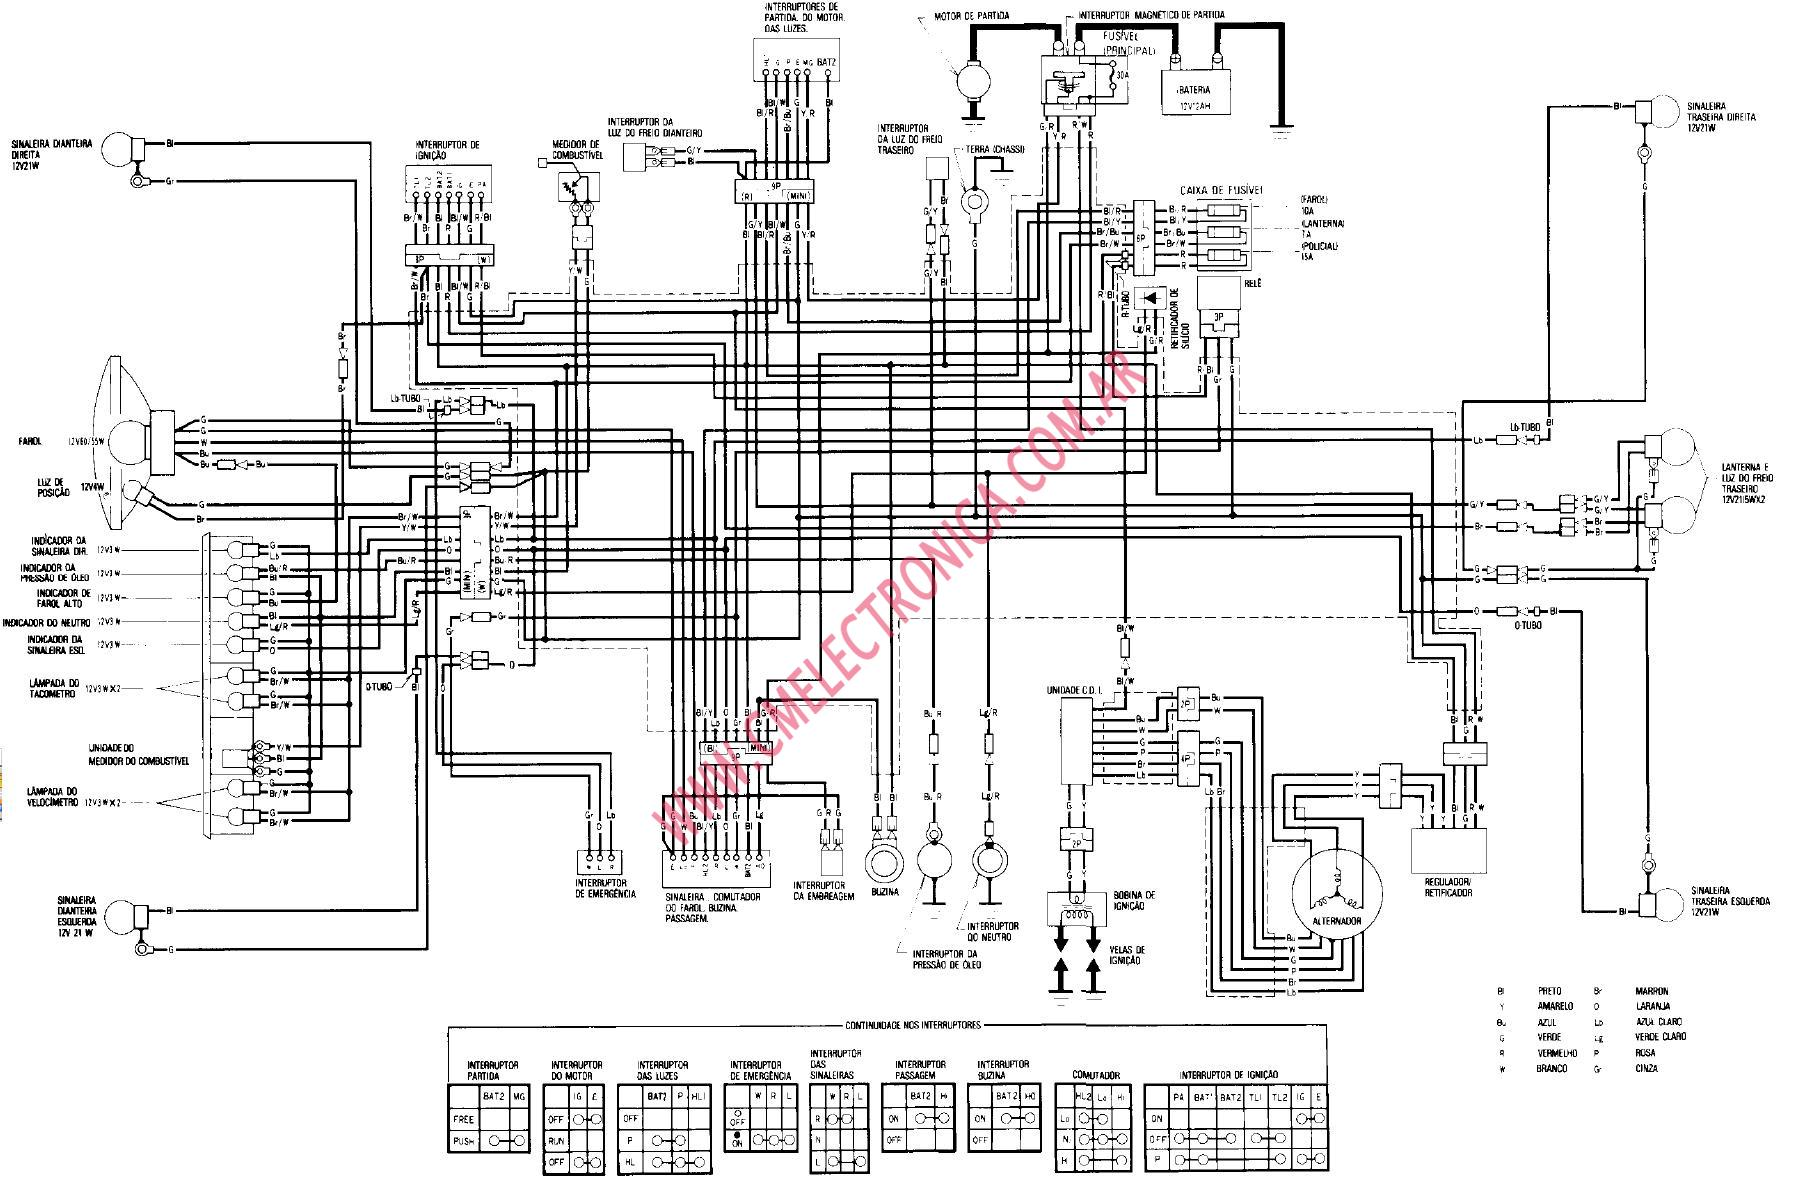 Klx 250s Wiring Schematic 2007 besides Wiring Diagram Honda Cb350 Four together with Wiring Diagram For Gsxr 750 besides Klf 300 Wiring Diagram moreover 2008 Kawasaki Klx Wiring Diagram. on klx 650 wire diagram